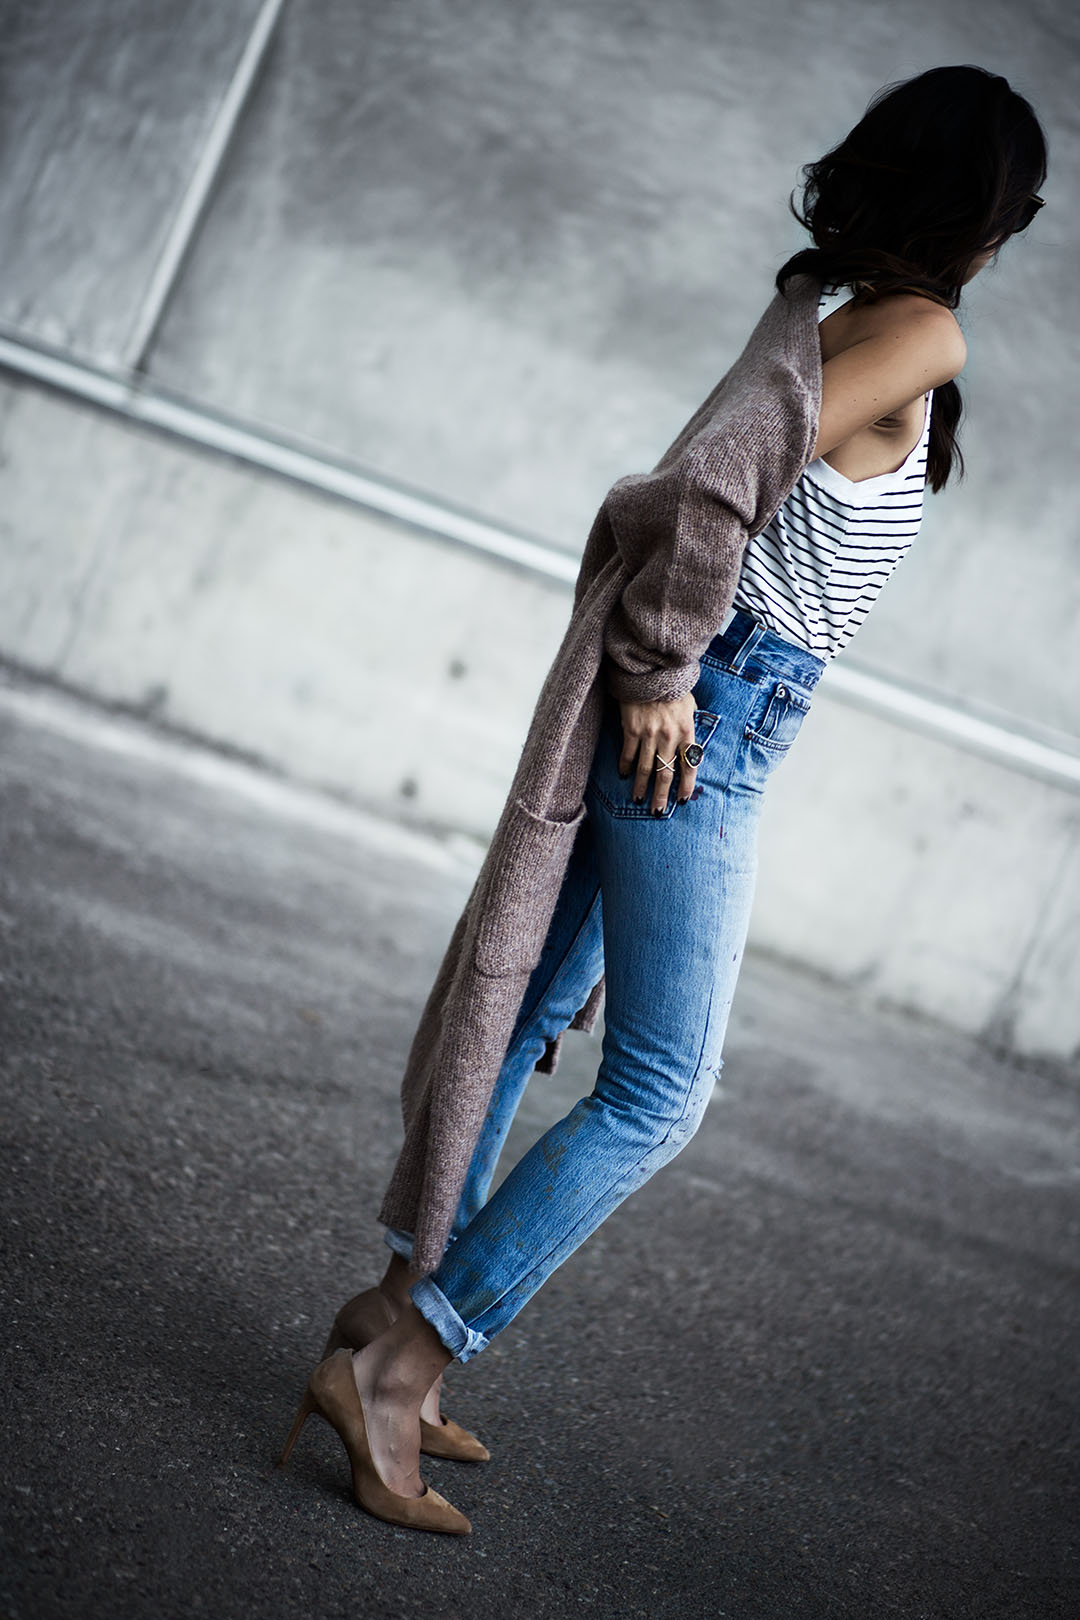 Shop_Redone_Jeans_Long_Cardigan.jpg